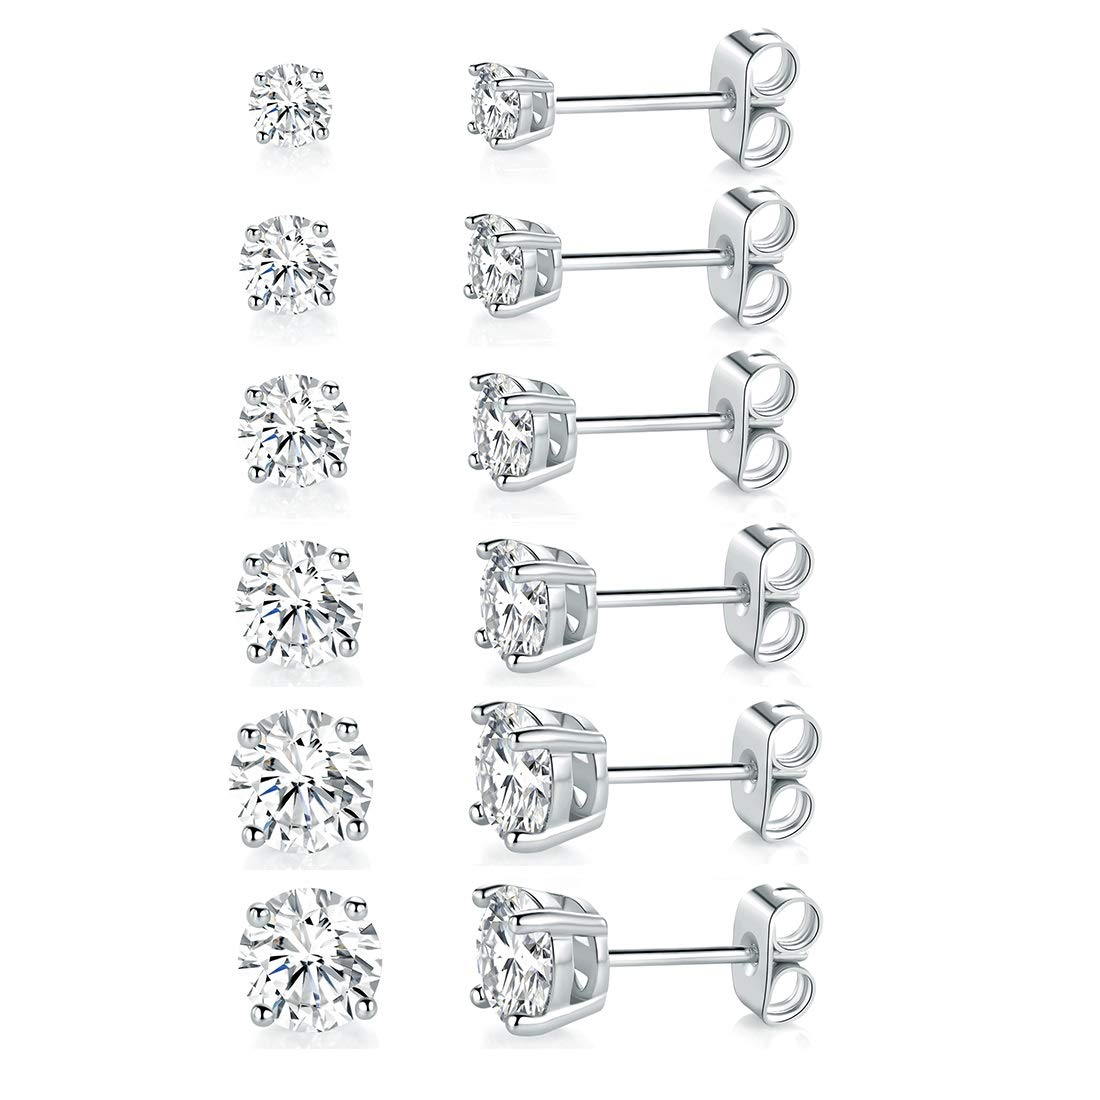 18K White Gold Plated 4 Pong Round Clear Cubic Zirconia Stud Earring Pack of 6 Pairs (6 Pairs) by MDFUN